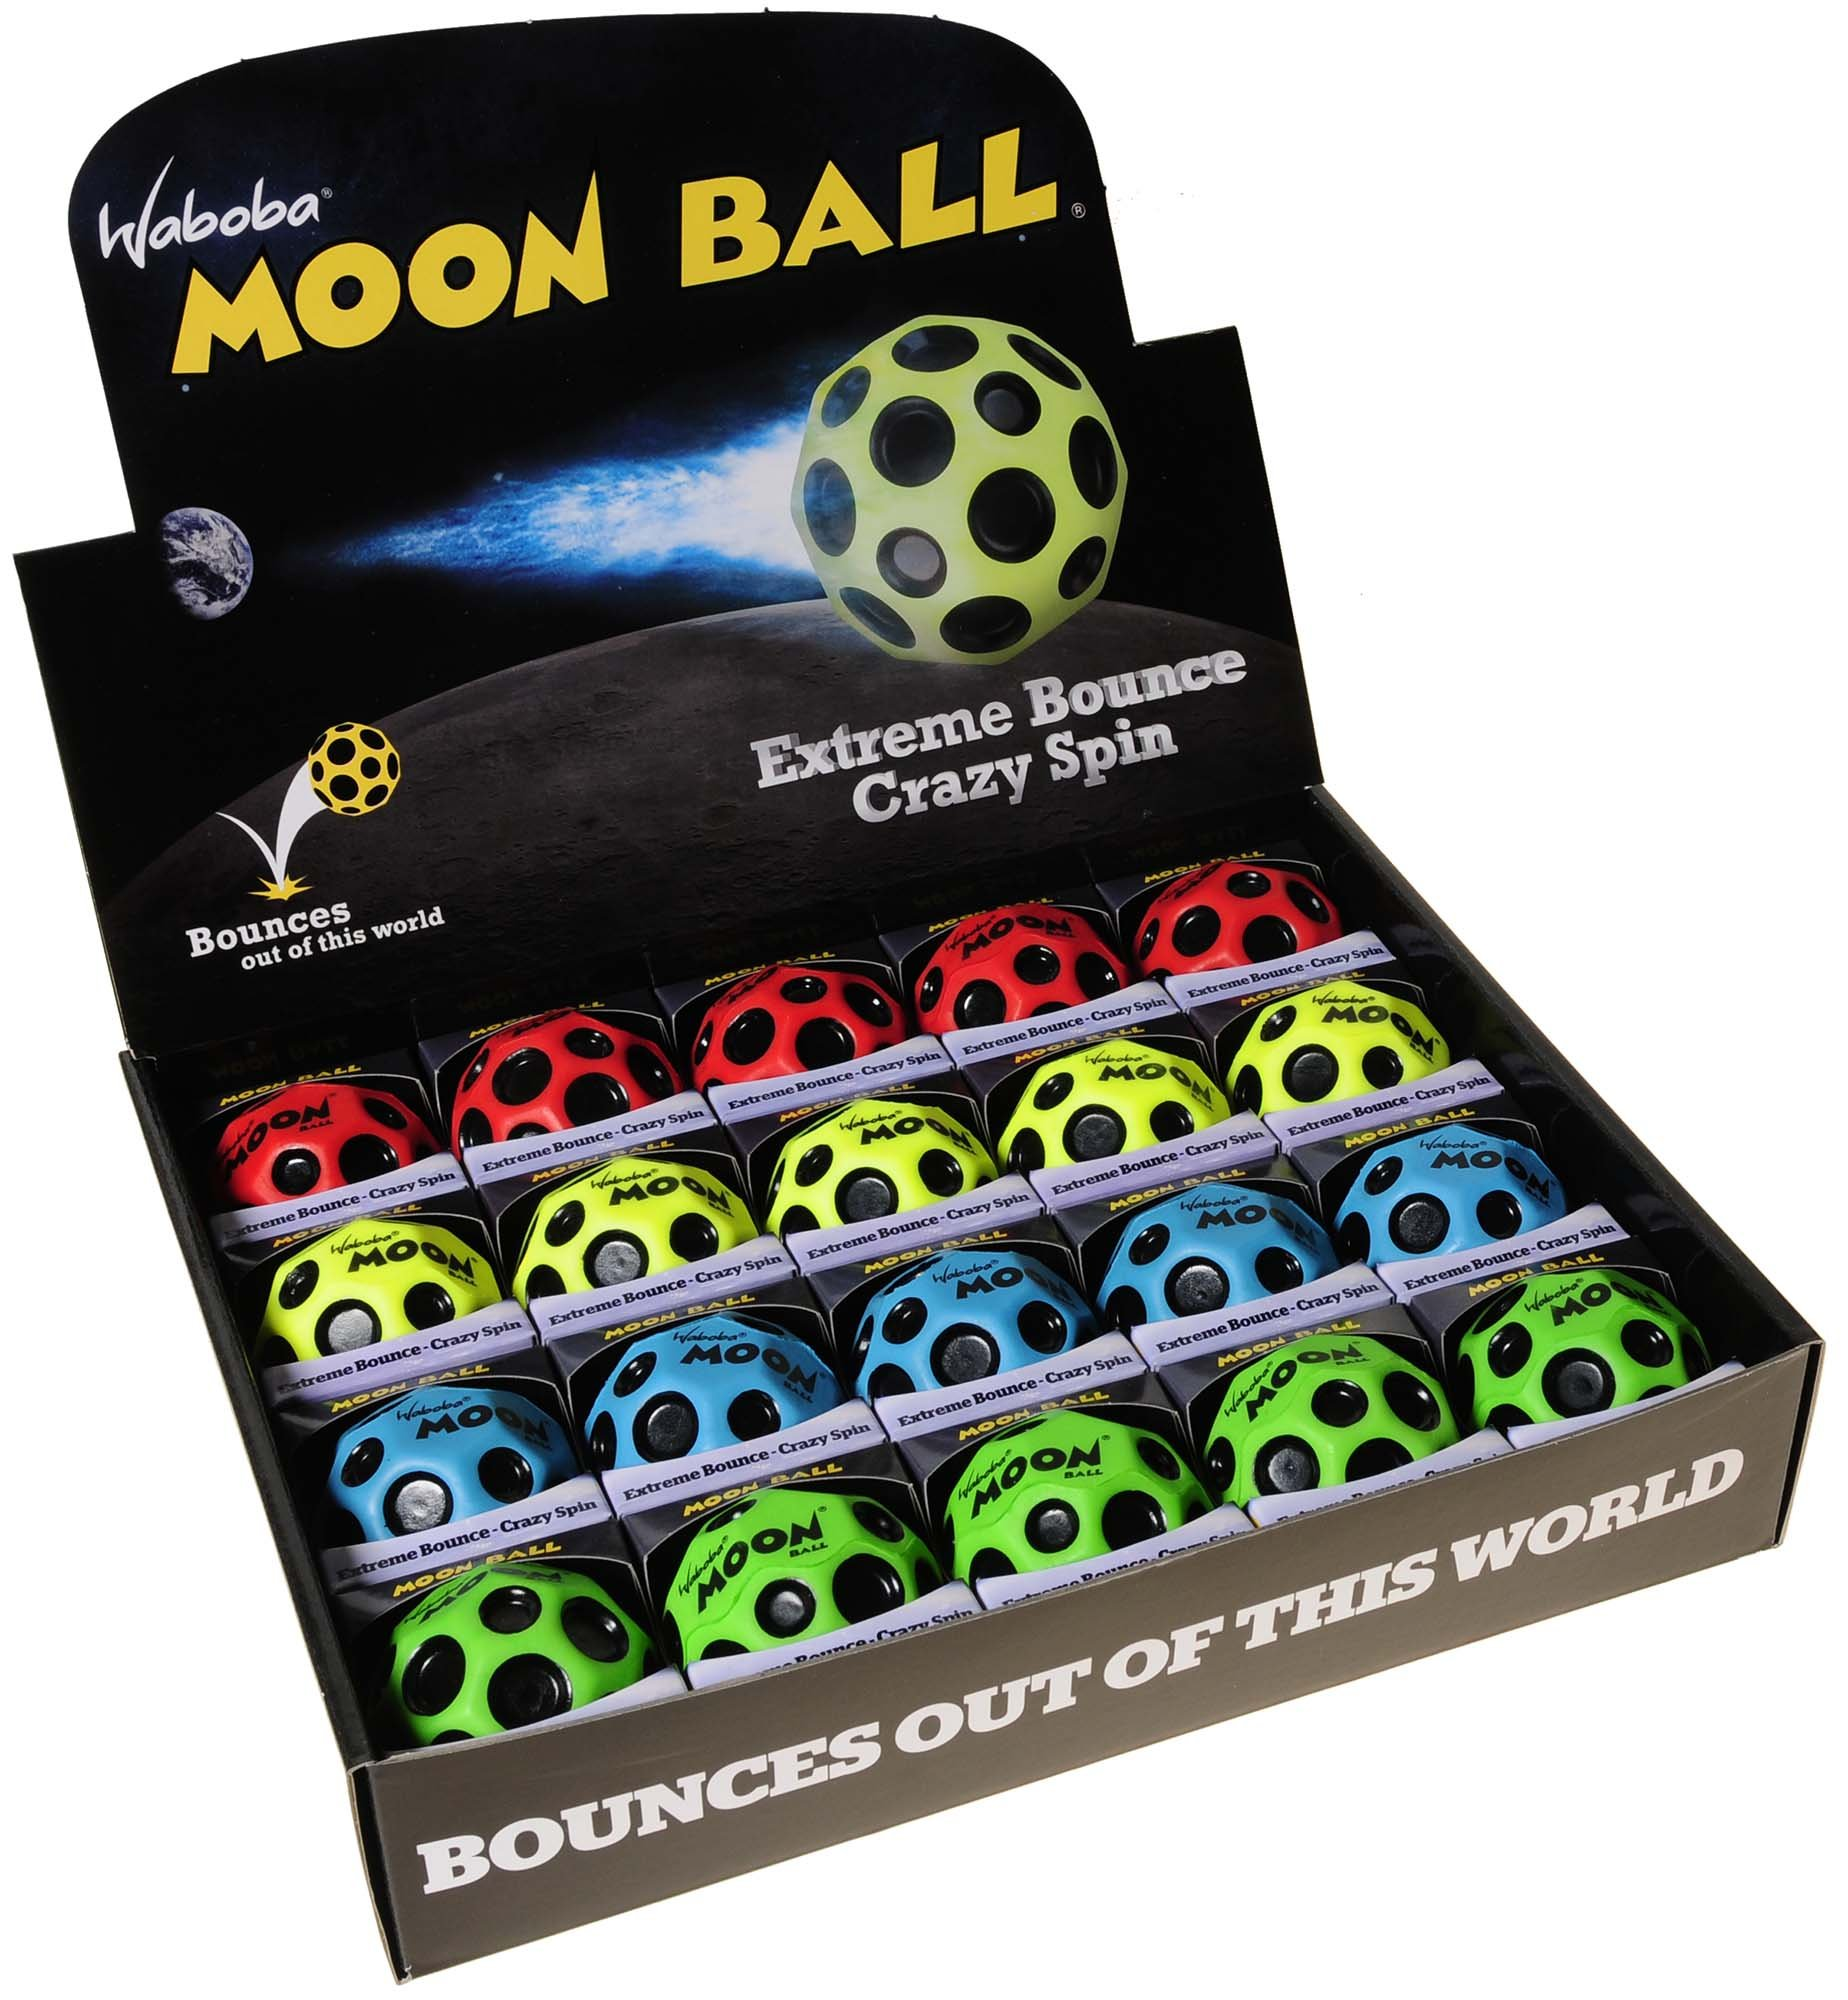 Waboba MOON Extreme Bounce Balls, Bundle of 20, 5 each in 4 Neon Colors, BONUS Blue Nylon-Black Mesh Drawstring Pack, Bundled Items by Waboba (Image #5)